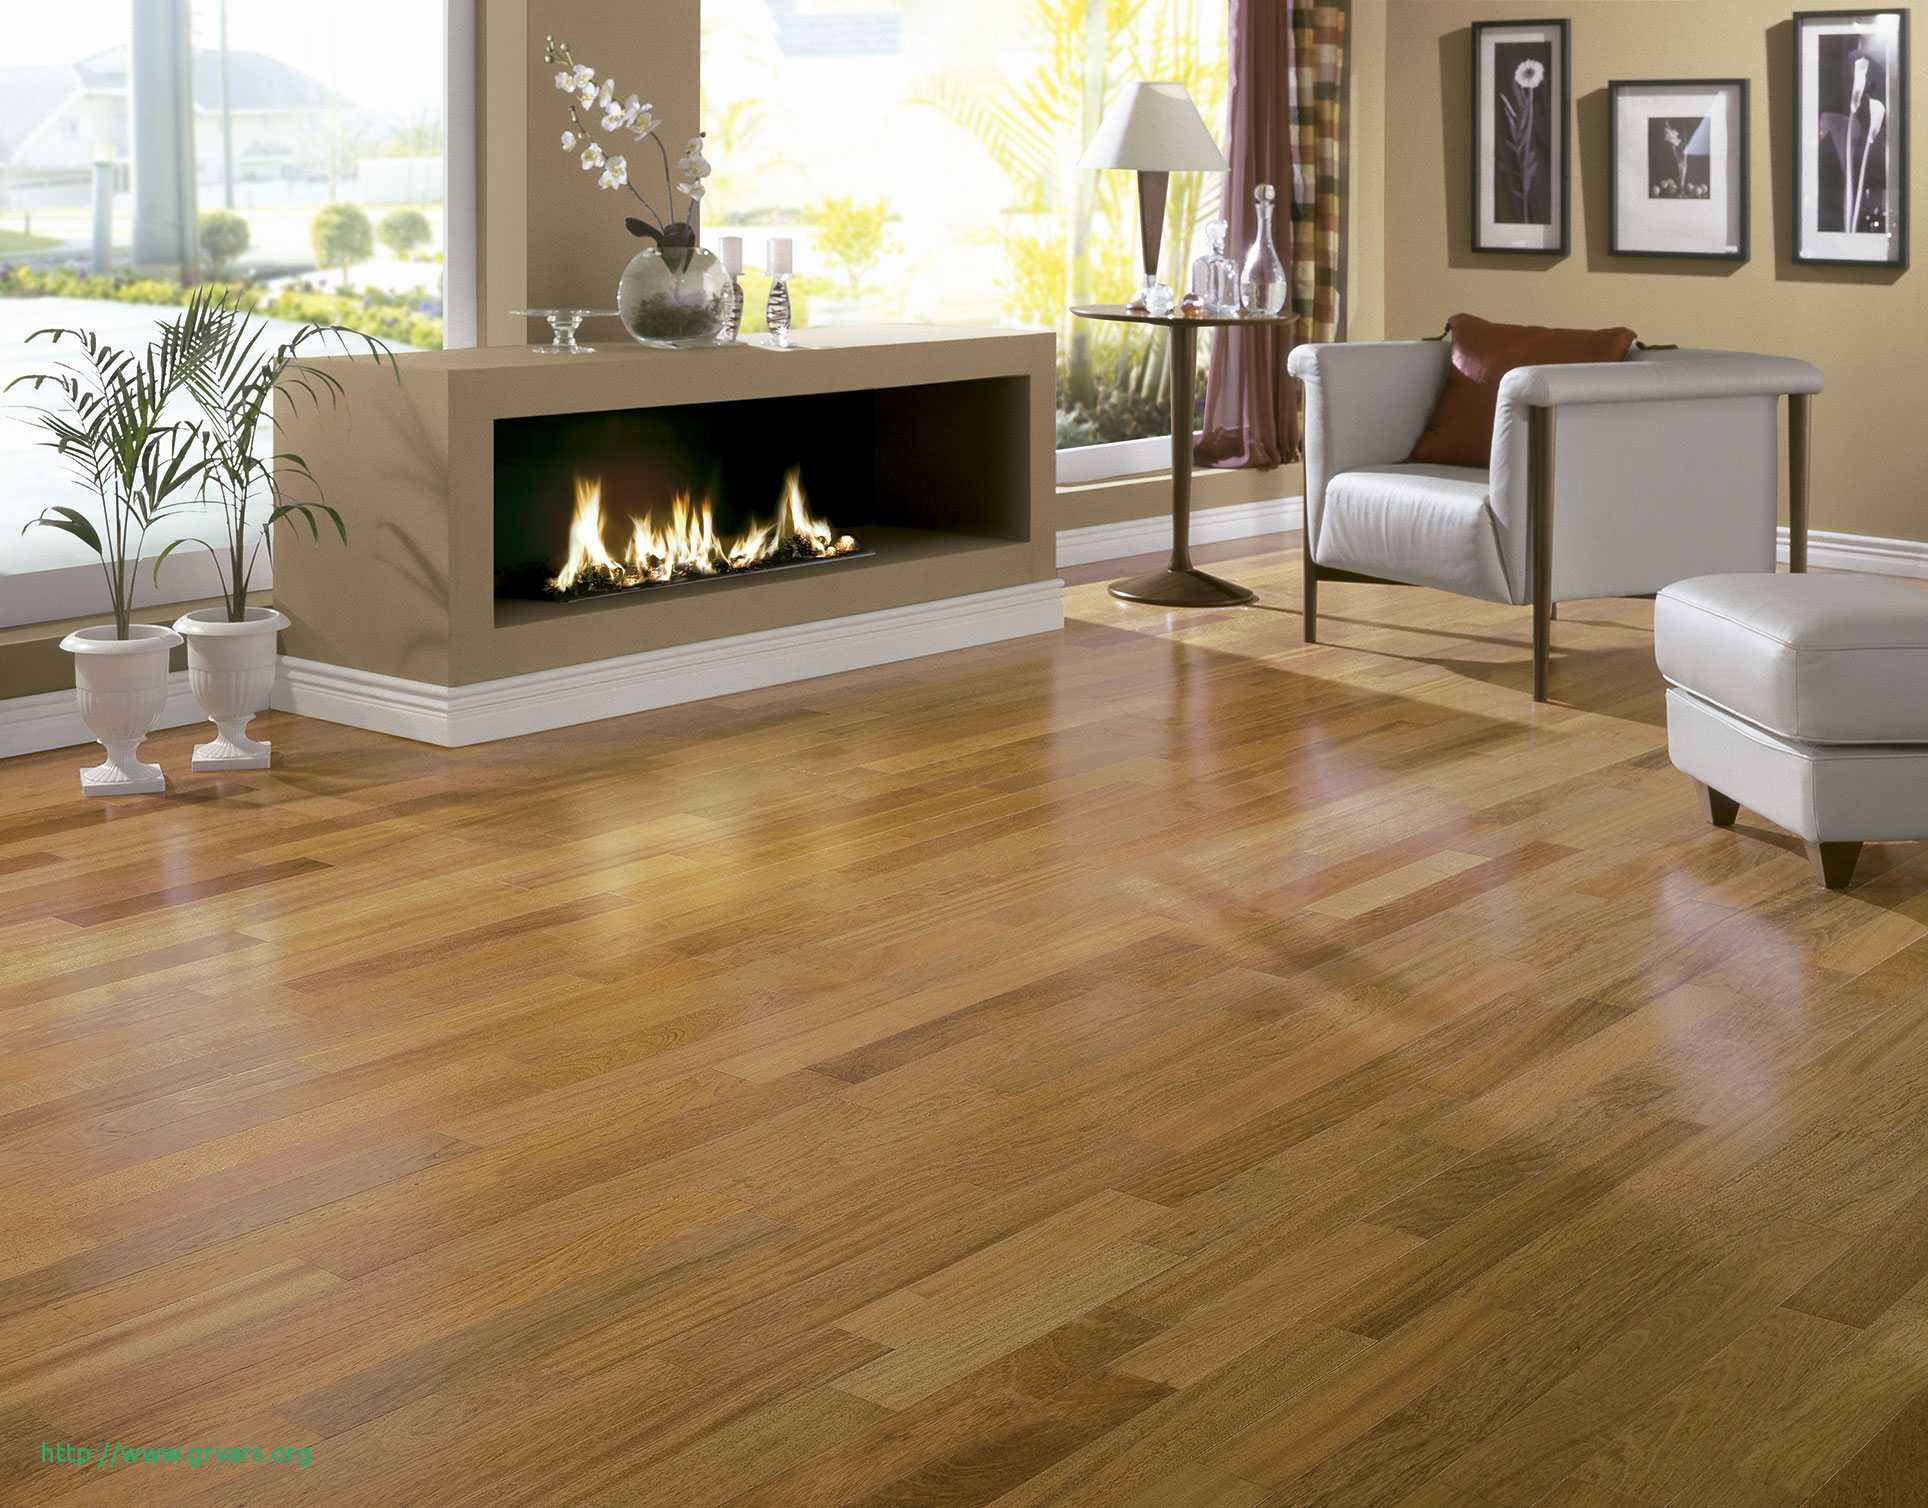 Hardwood Floor Installation Nashville Tn Of Floors Direct Nashville Tn Meilleur De Engaging Discount Hardwood within Floors Direct Nashville Tn Meilleur De Engaging Discount Hardwood Flooring 5 where to Buy Inspirational 0d